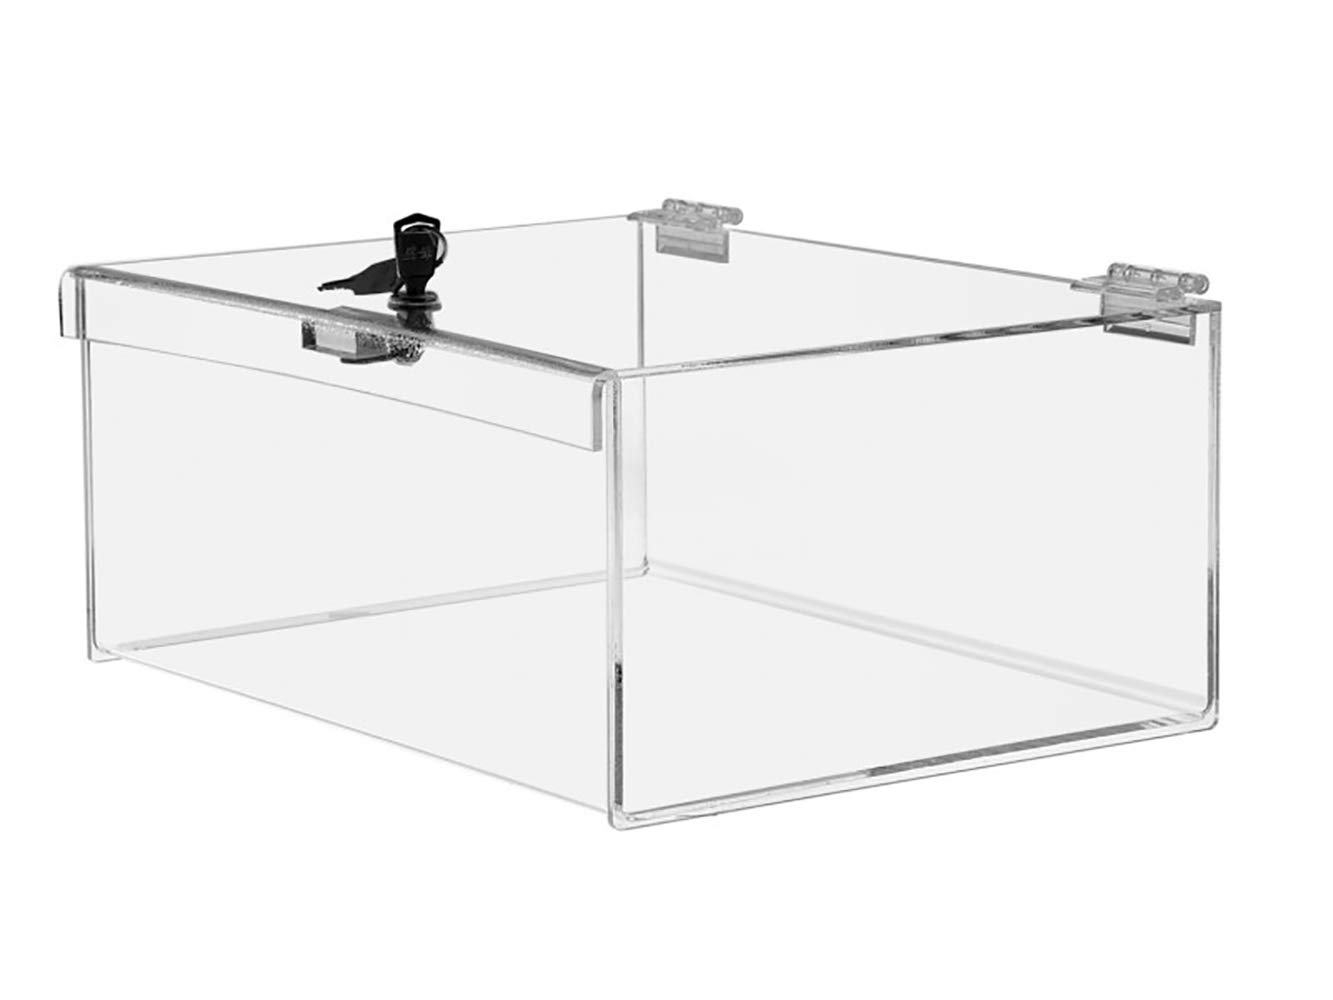 Marketing Holders Locking Case Security Show Case Safe Box Display Valuables Keep Safe 12''w x 9''d x 5''h Qty 1